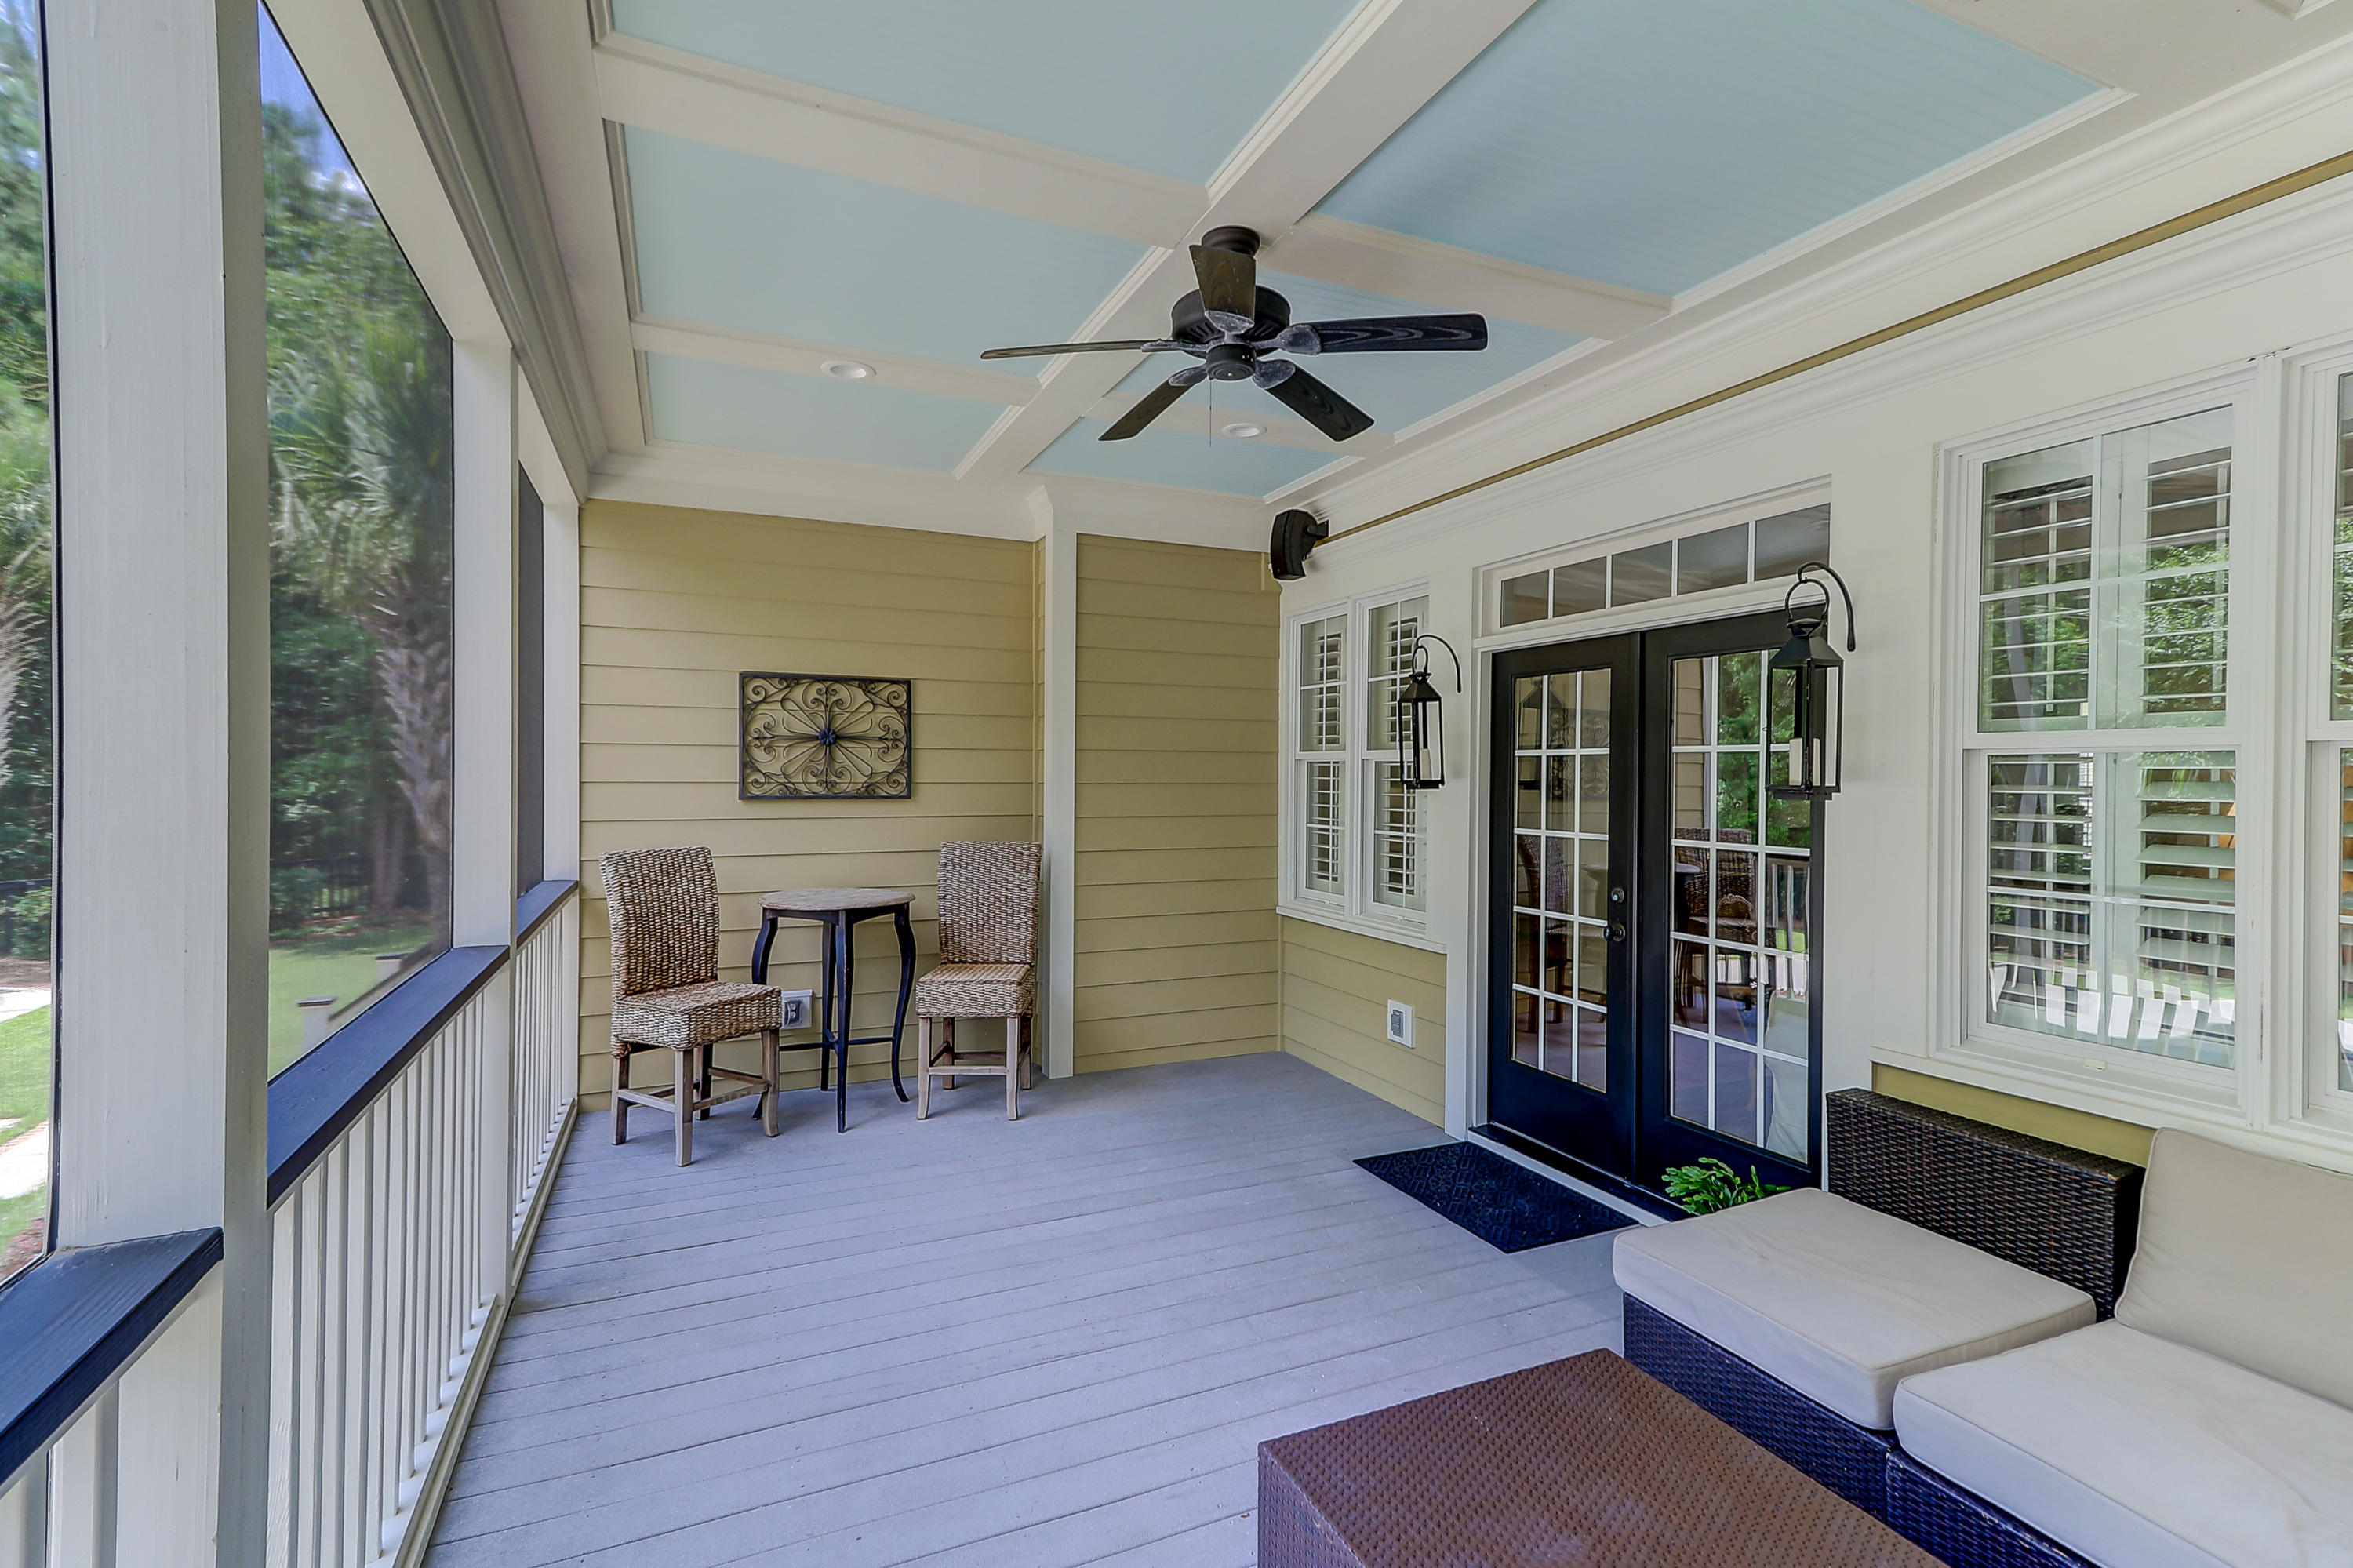 Dunes West Homes For Sale - 1305 King Bird, Mount Pleasant, SC - 10